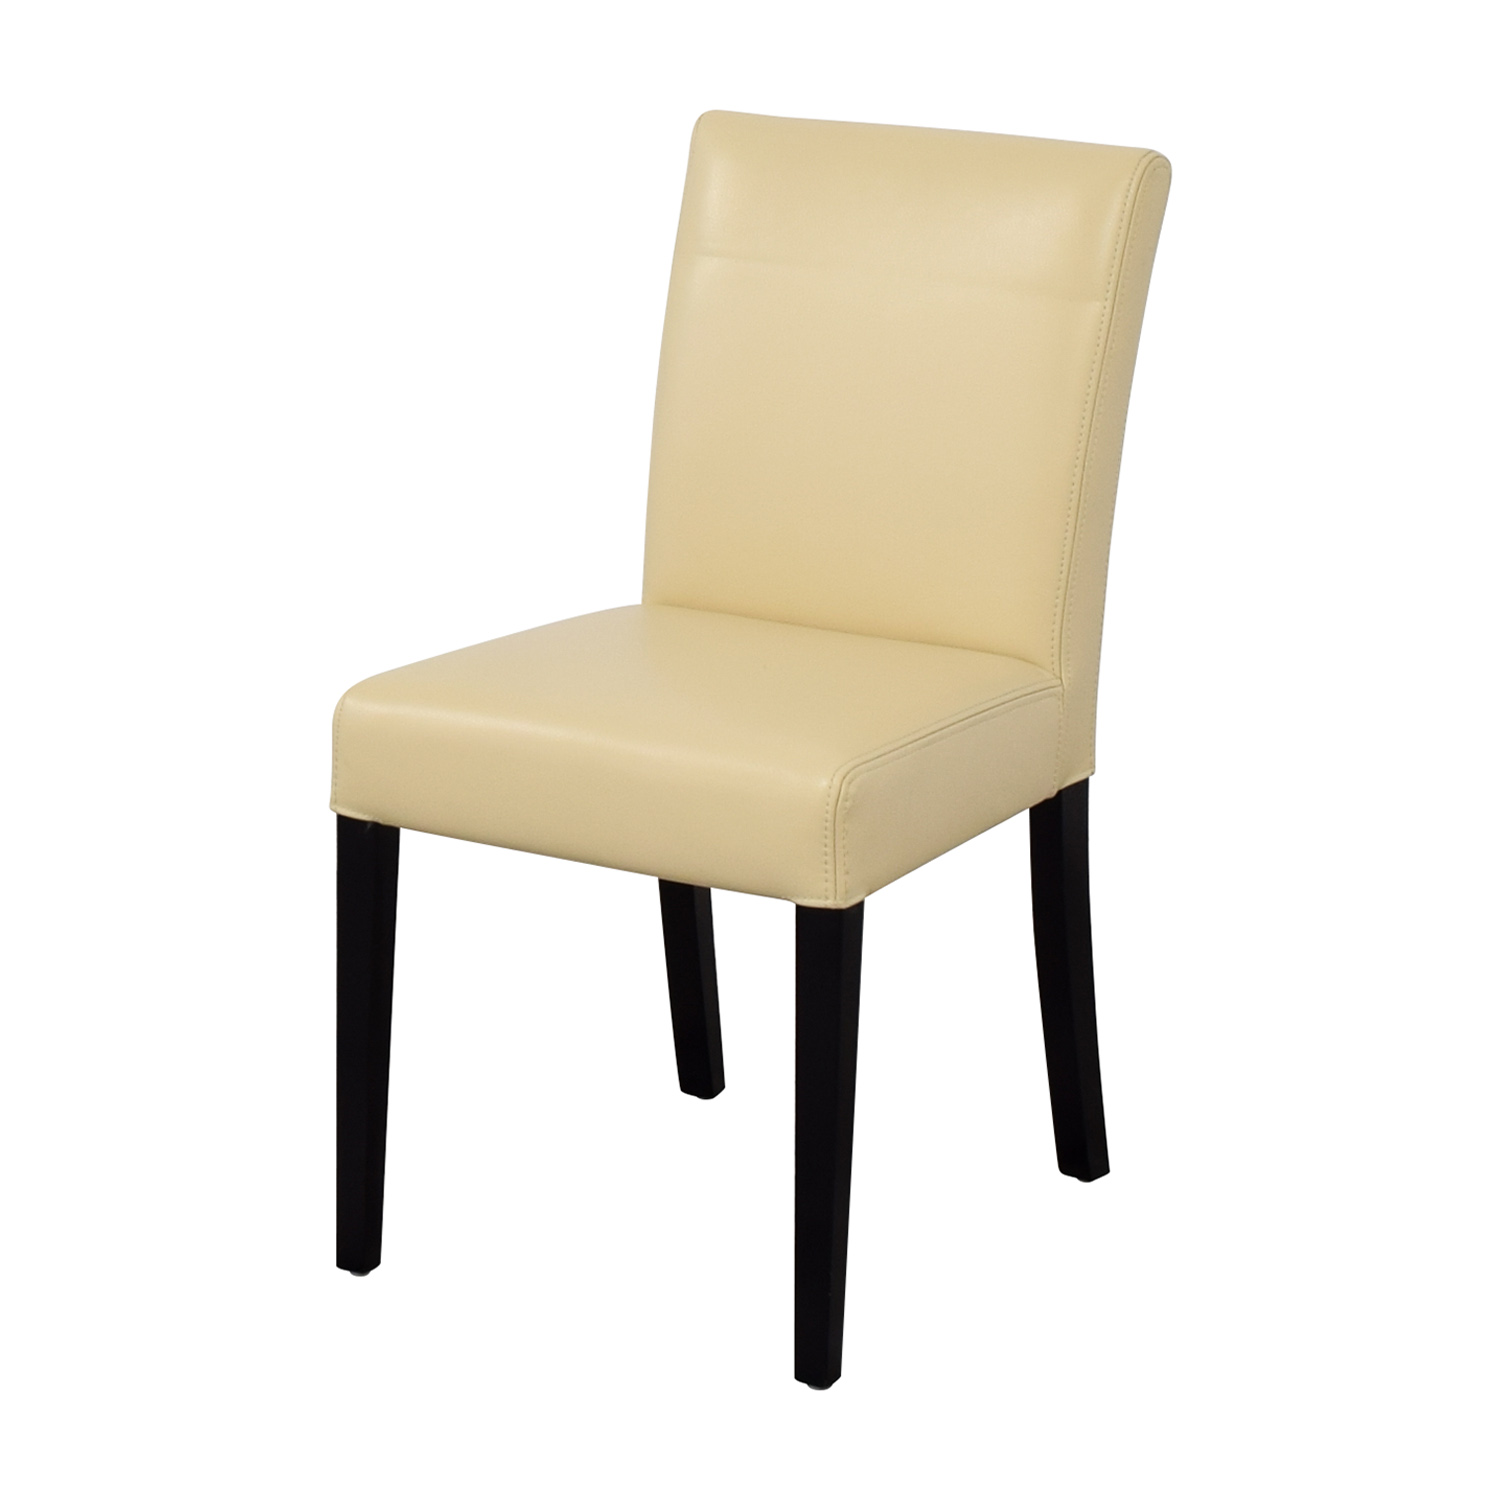 Crate & Barrel Dining Chairs / Chairs